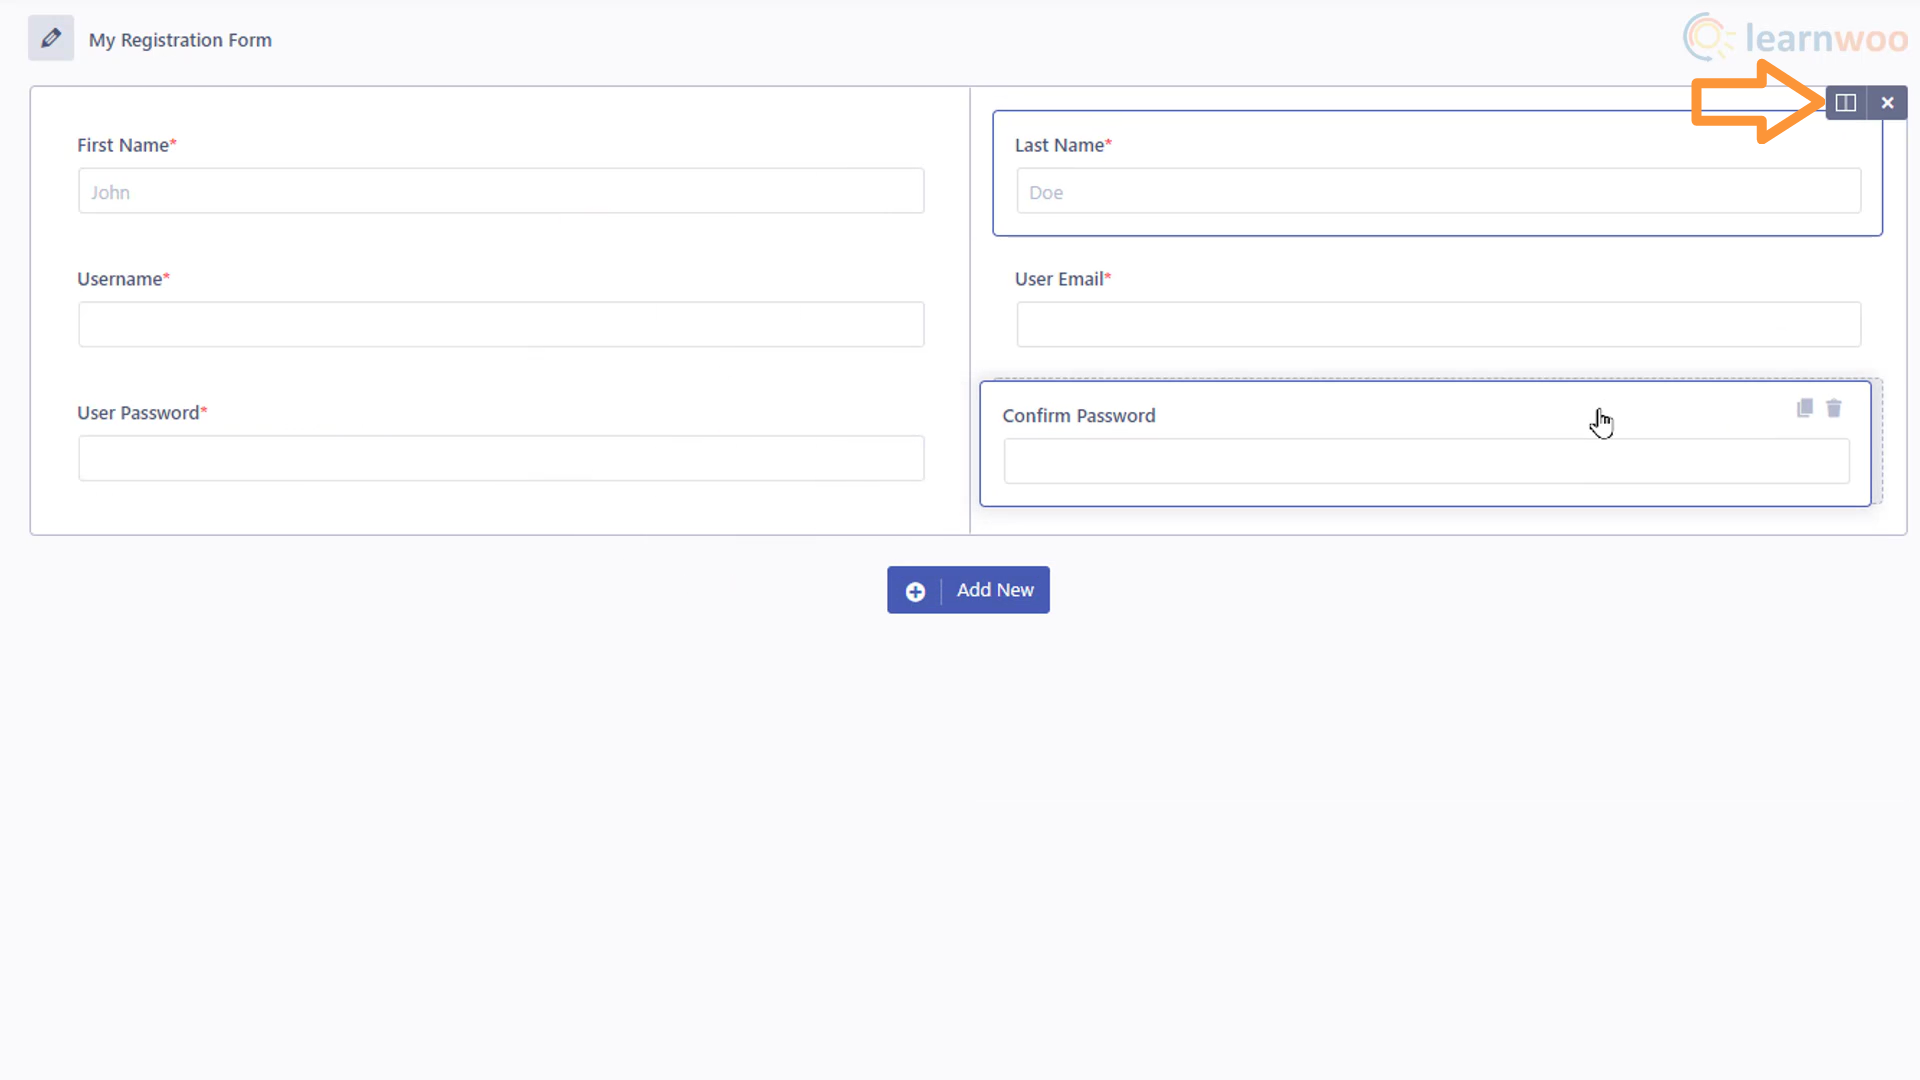 Creating a login and registration form